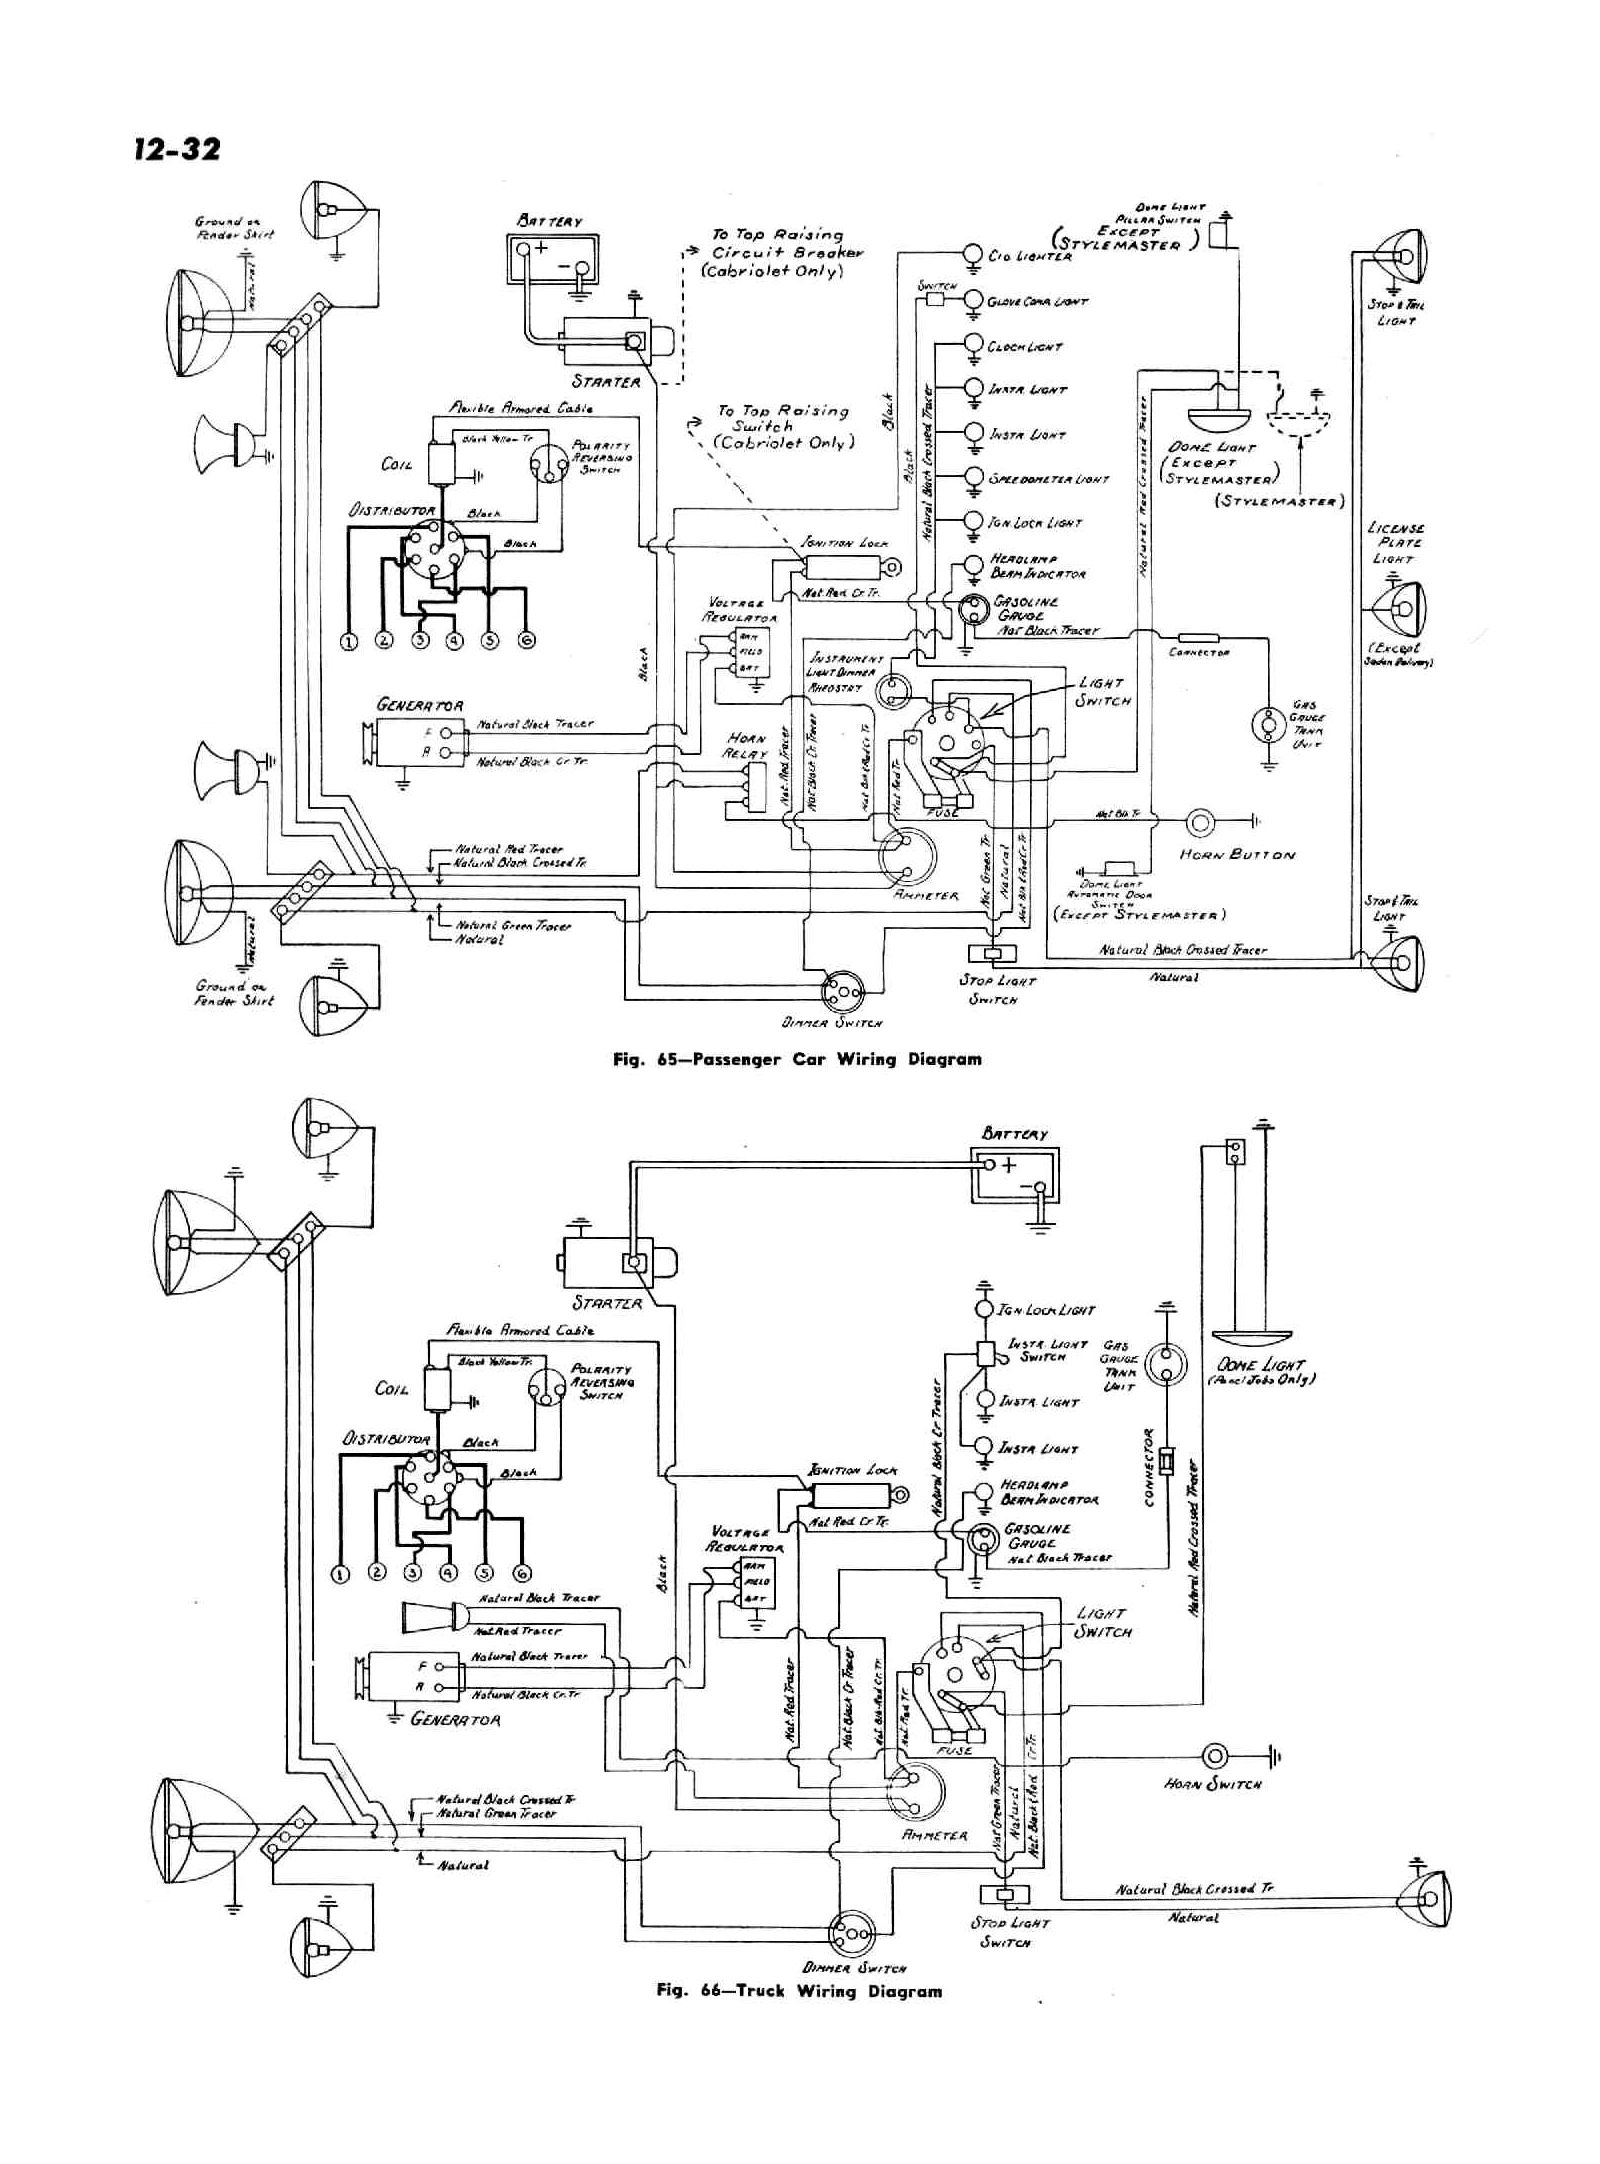 International Harvester Truck Wiring Diagram Light Switch Best Site For Ih 234 1066 Tractor 1486